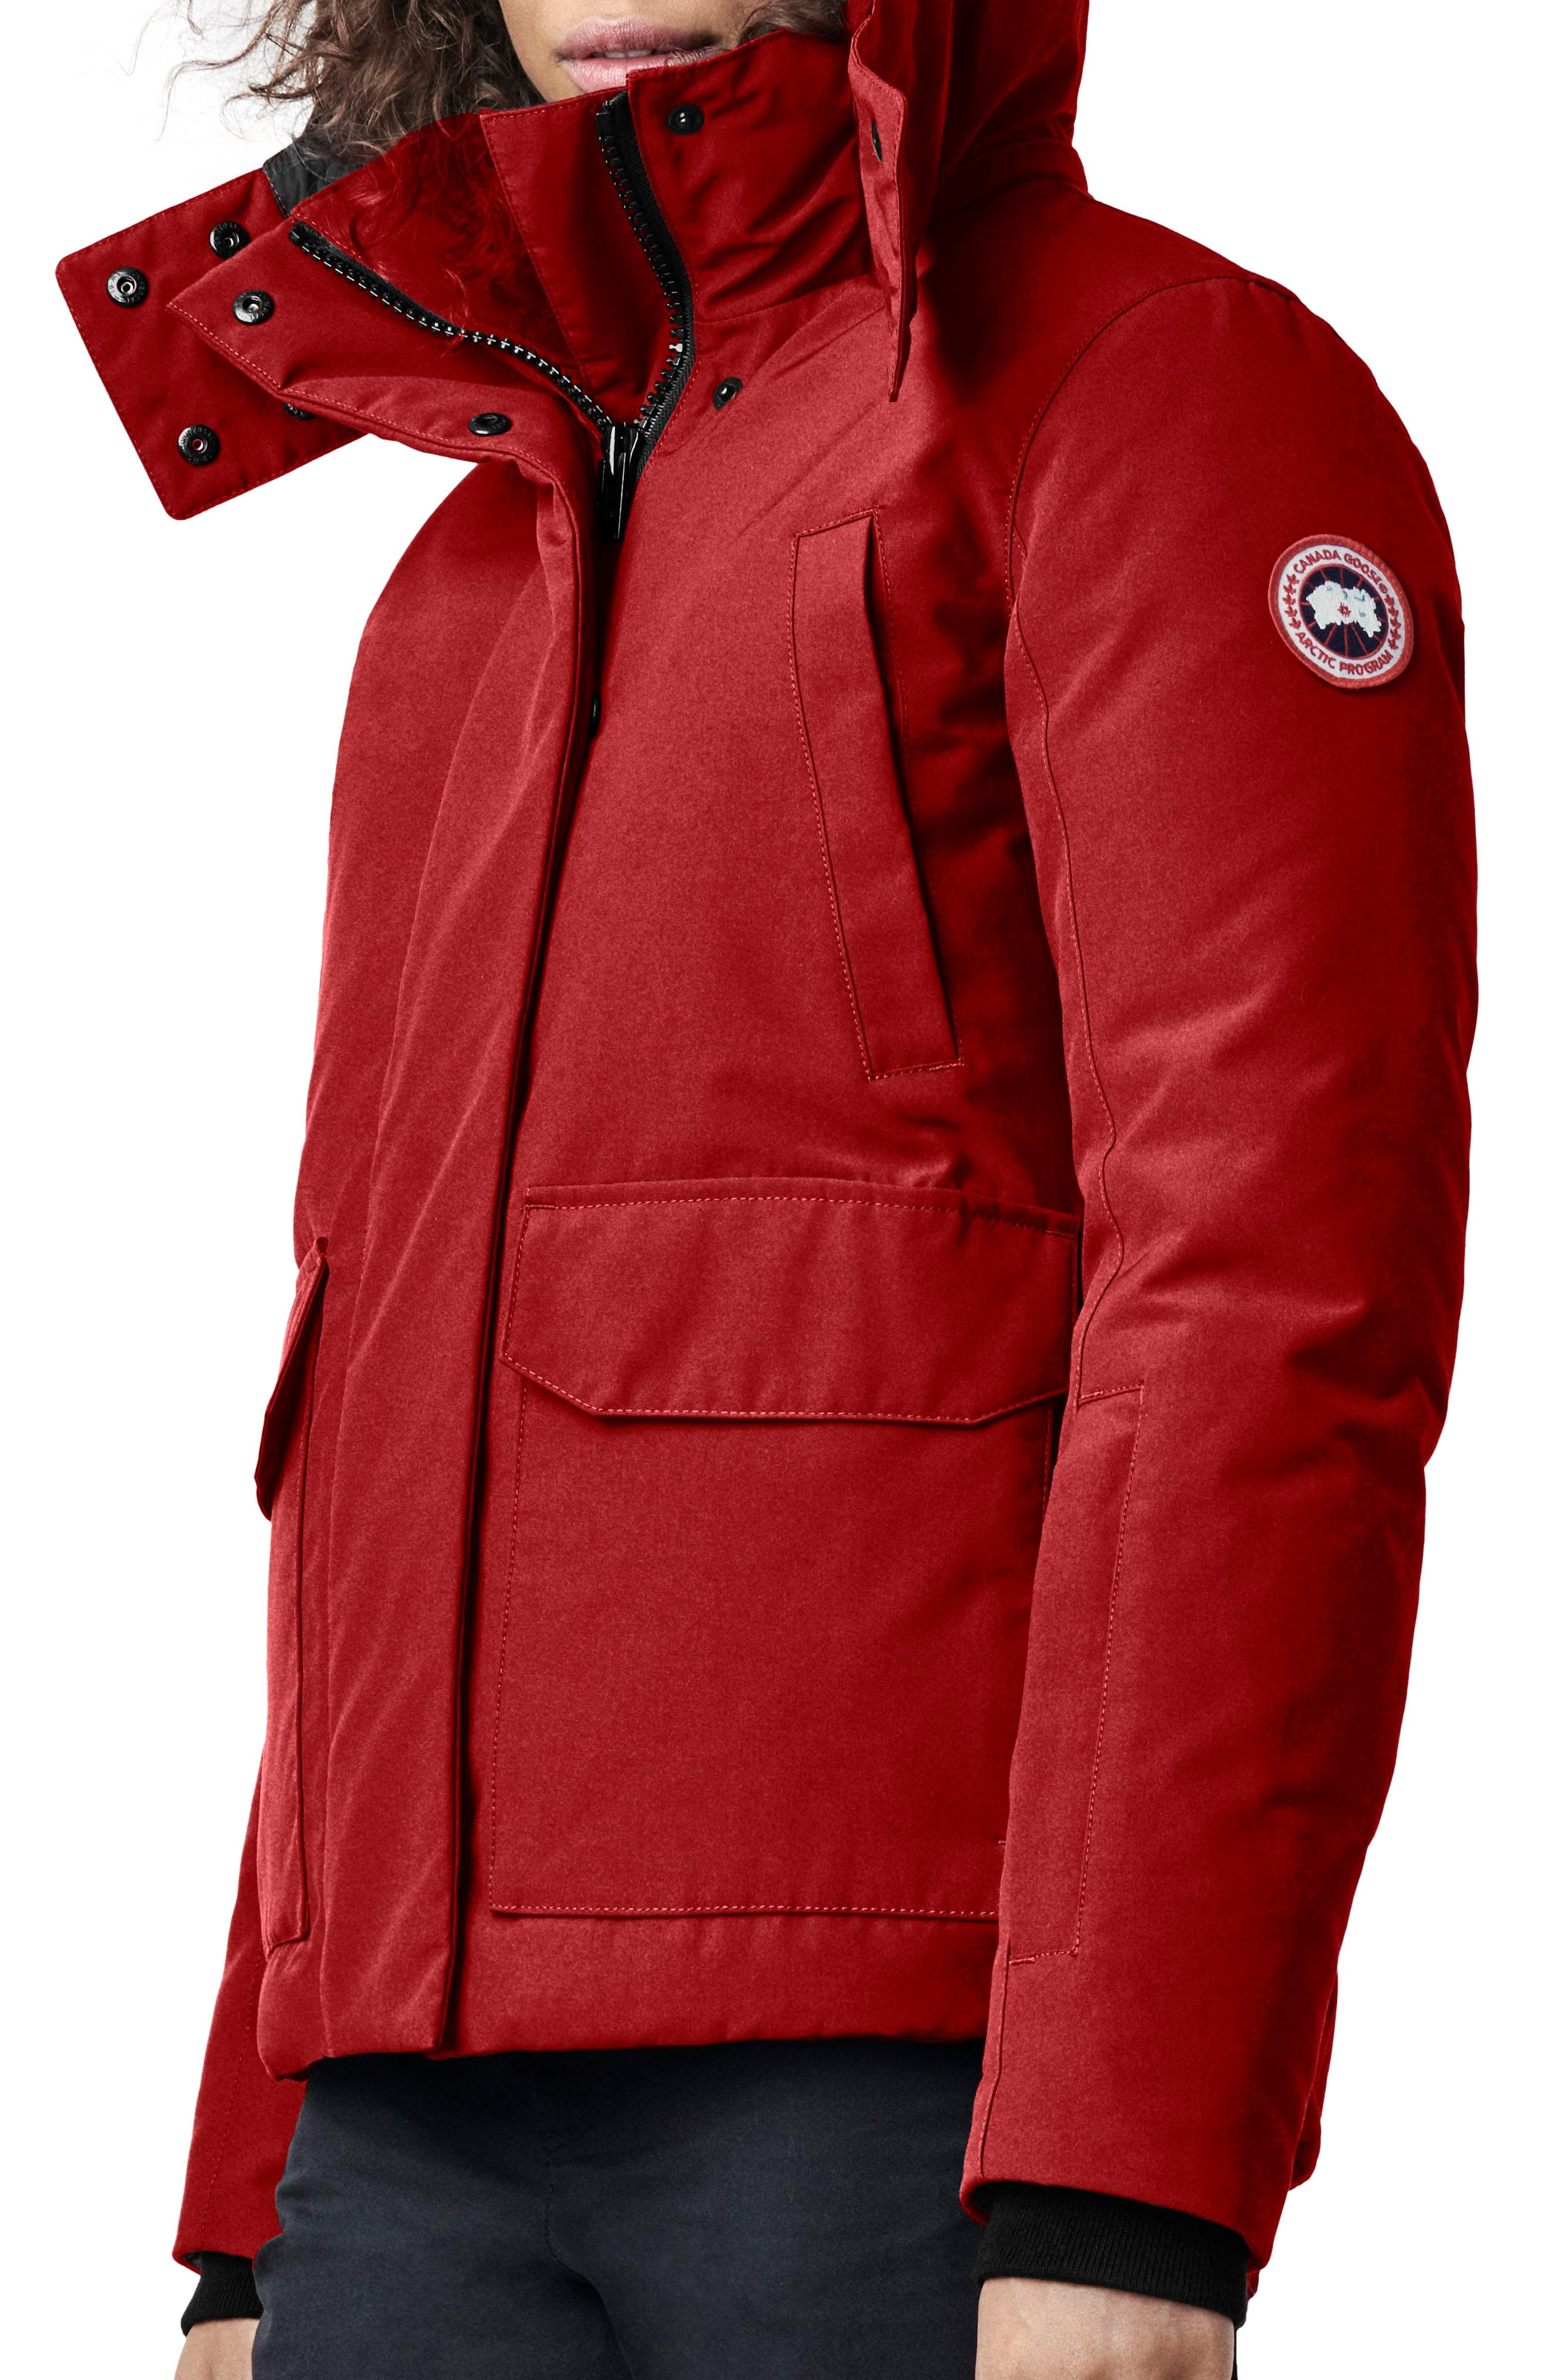 Canada Goose Blakely Water Resistant 625 Fill Power Down Parka, (14-16) - Red